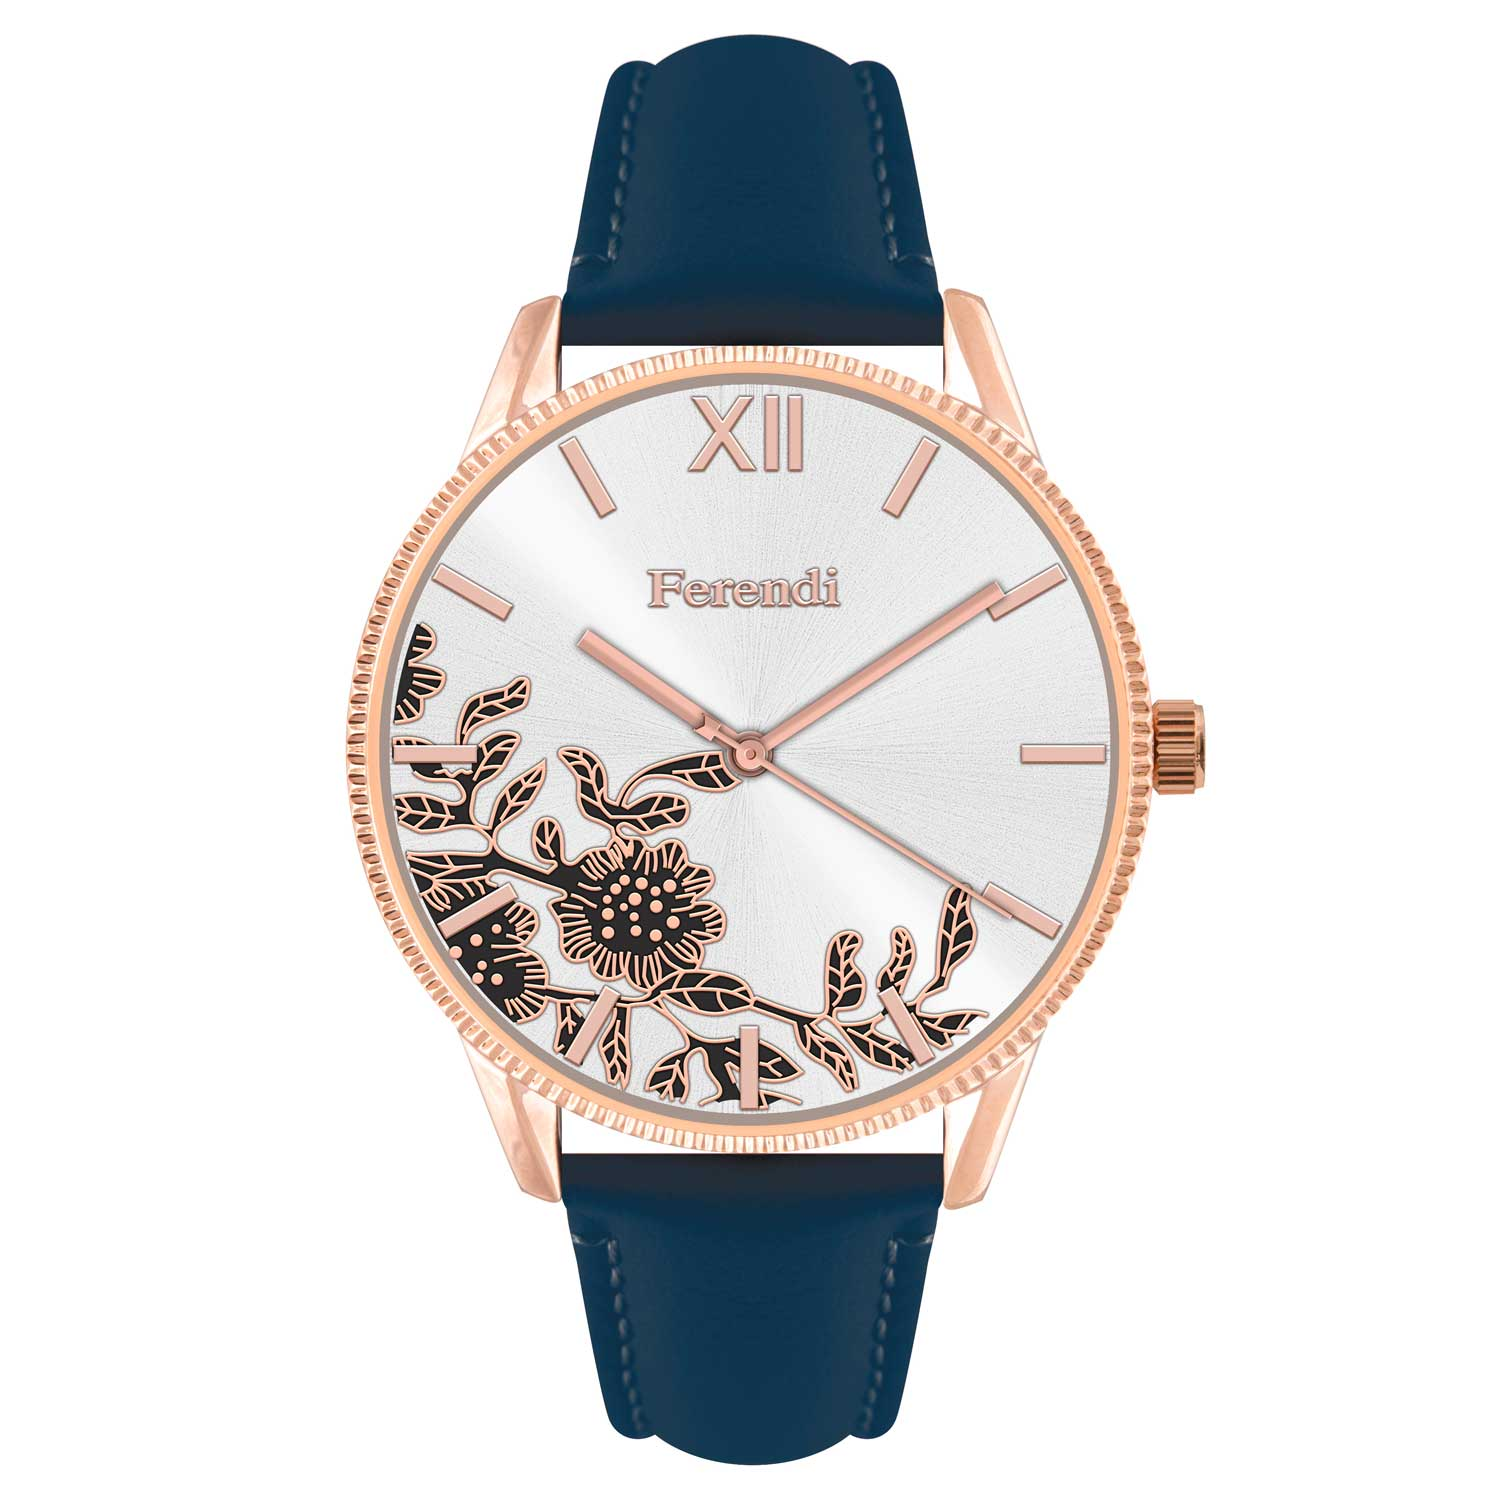 Leather Strap Rose Gold Watch Ferendi Watch 7160r 34 With Rose Gold Alloy Frame And Leather Strap